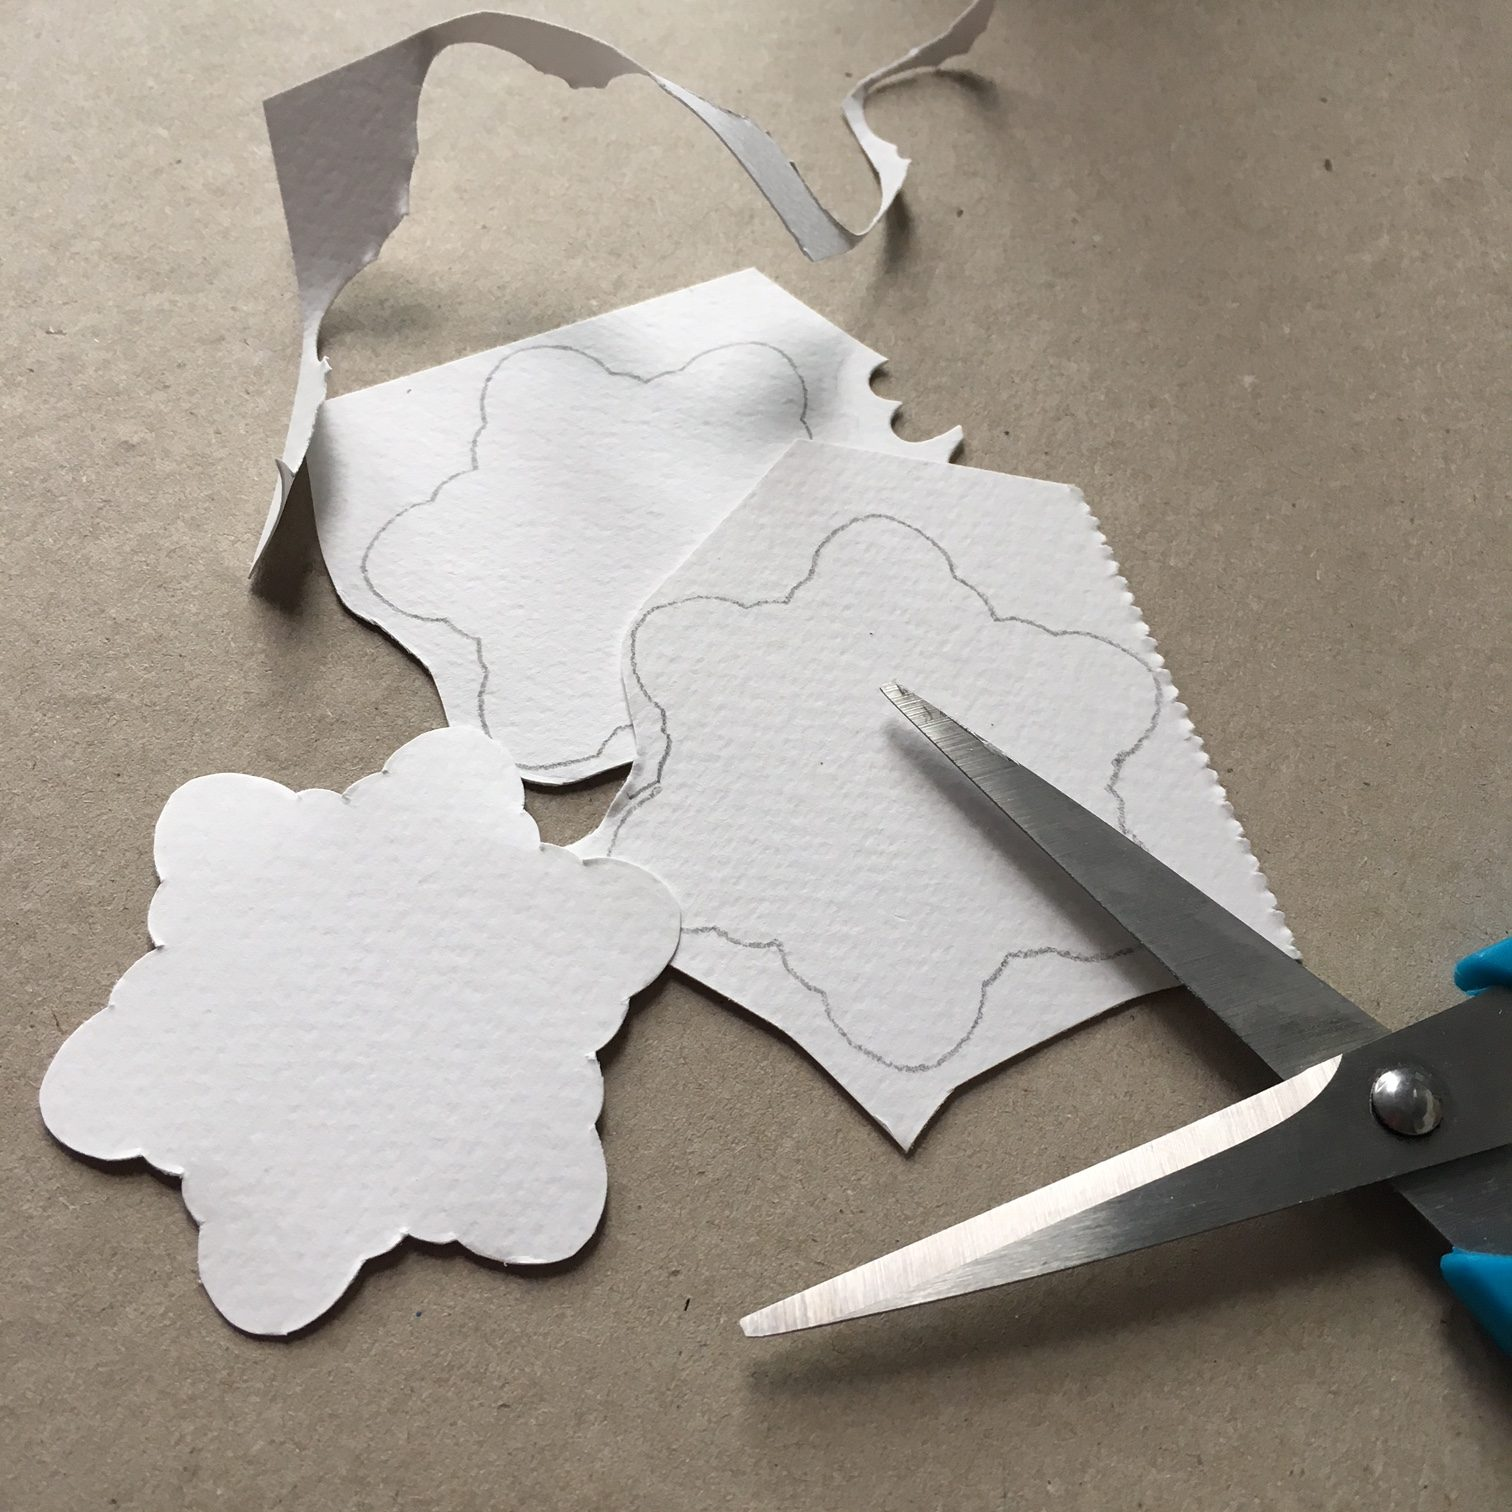 scissors and paper snowflake shape cut